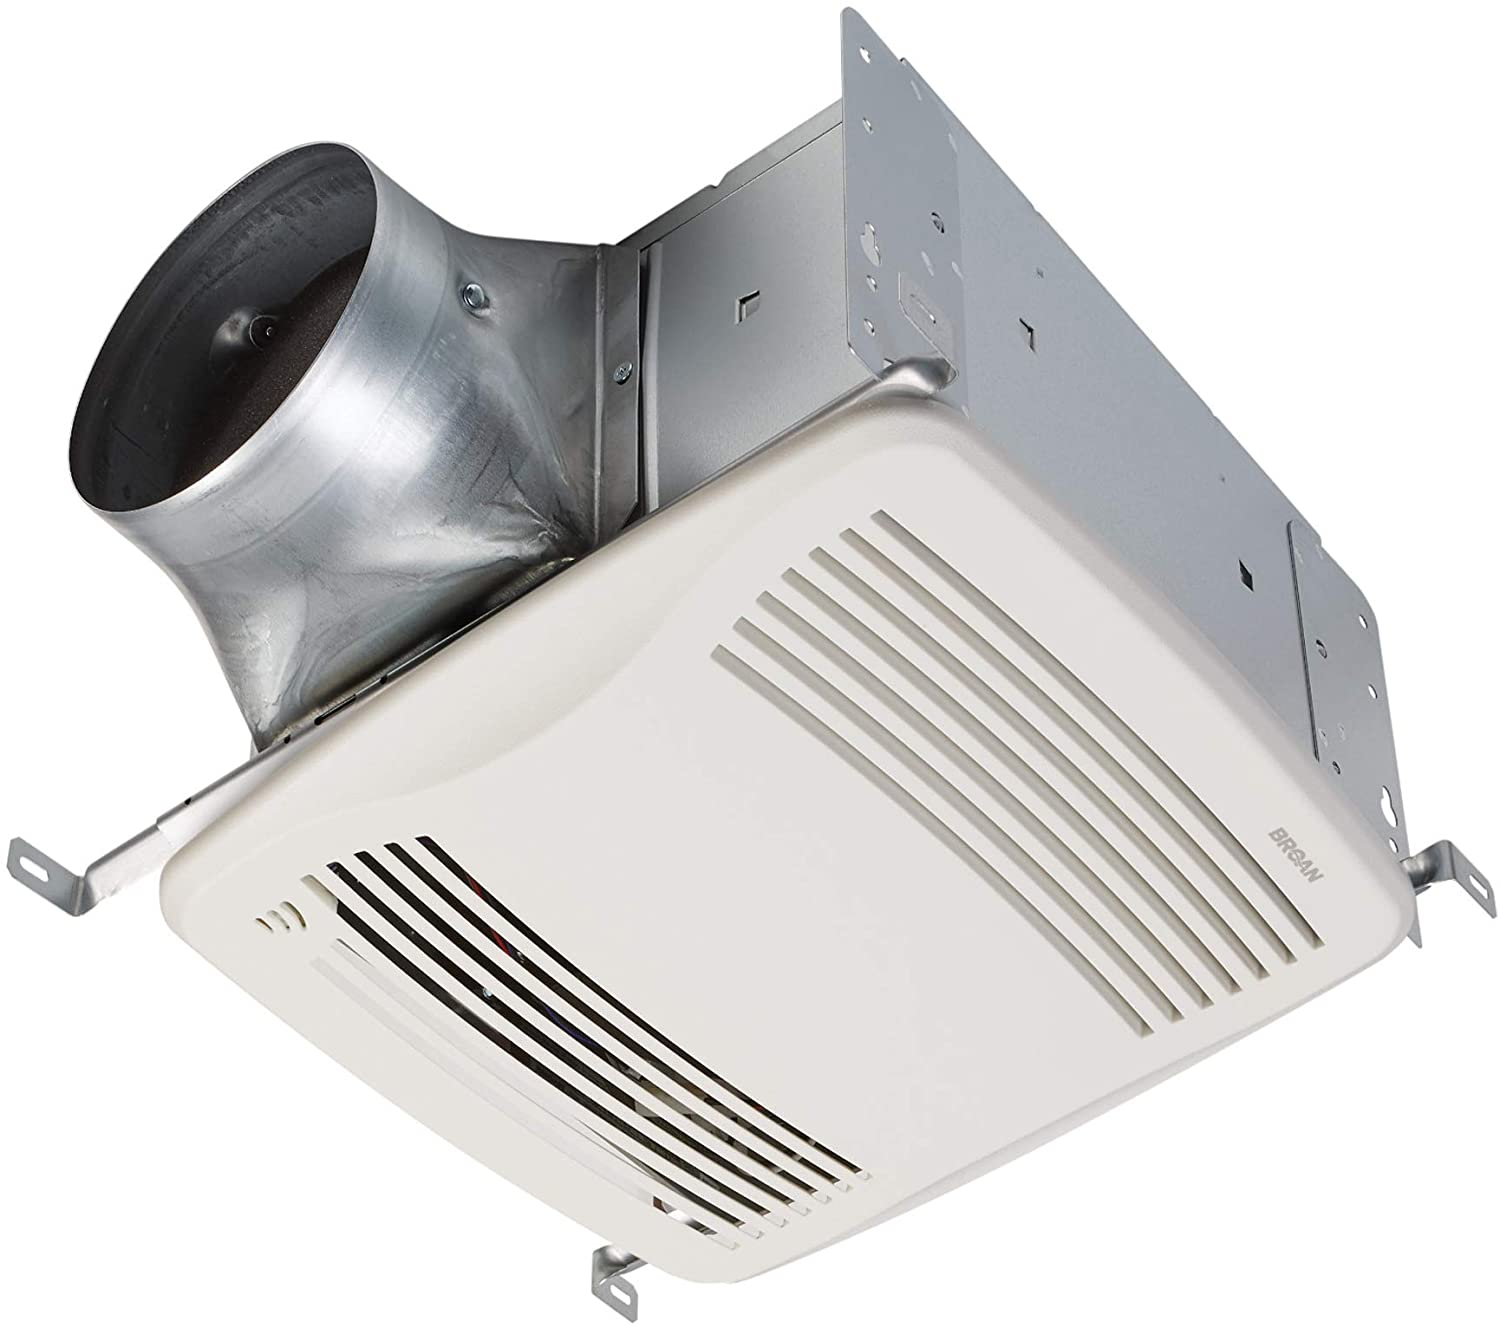 Broan-Nutone QTXE110S Ultra-Silent Humidity-Sensing Ventilation Fan,  Exhaust Fan for Bathroom and Home, ENERGY STAR Certified, 0.7 Sones, 110  CFM - Built In Household Ventilation Fans - Amazon.comAmazon.com